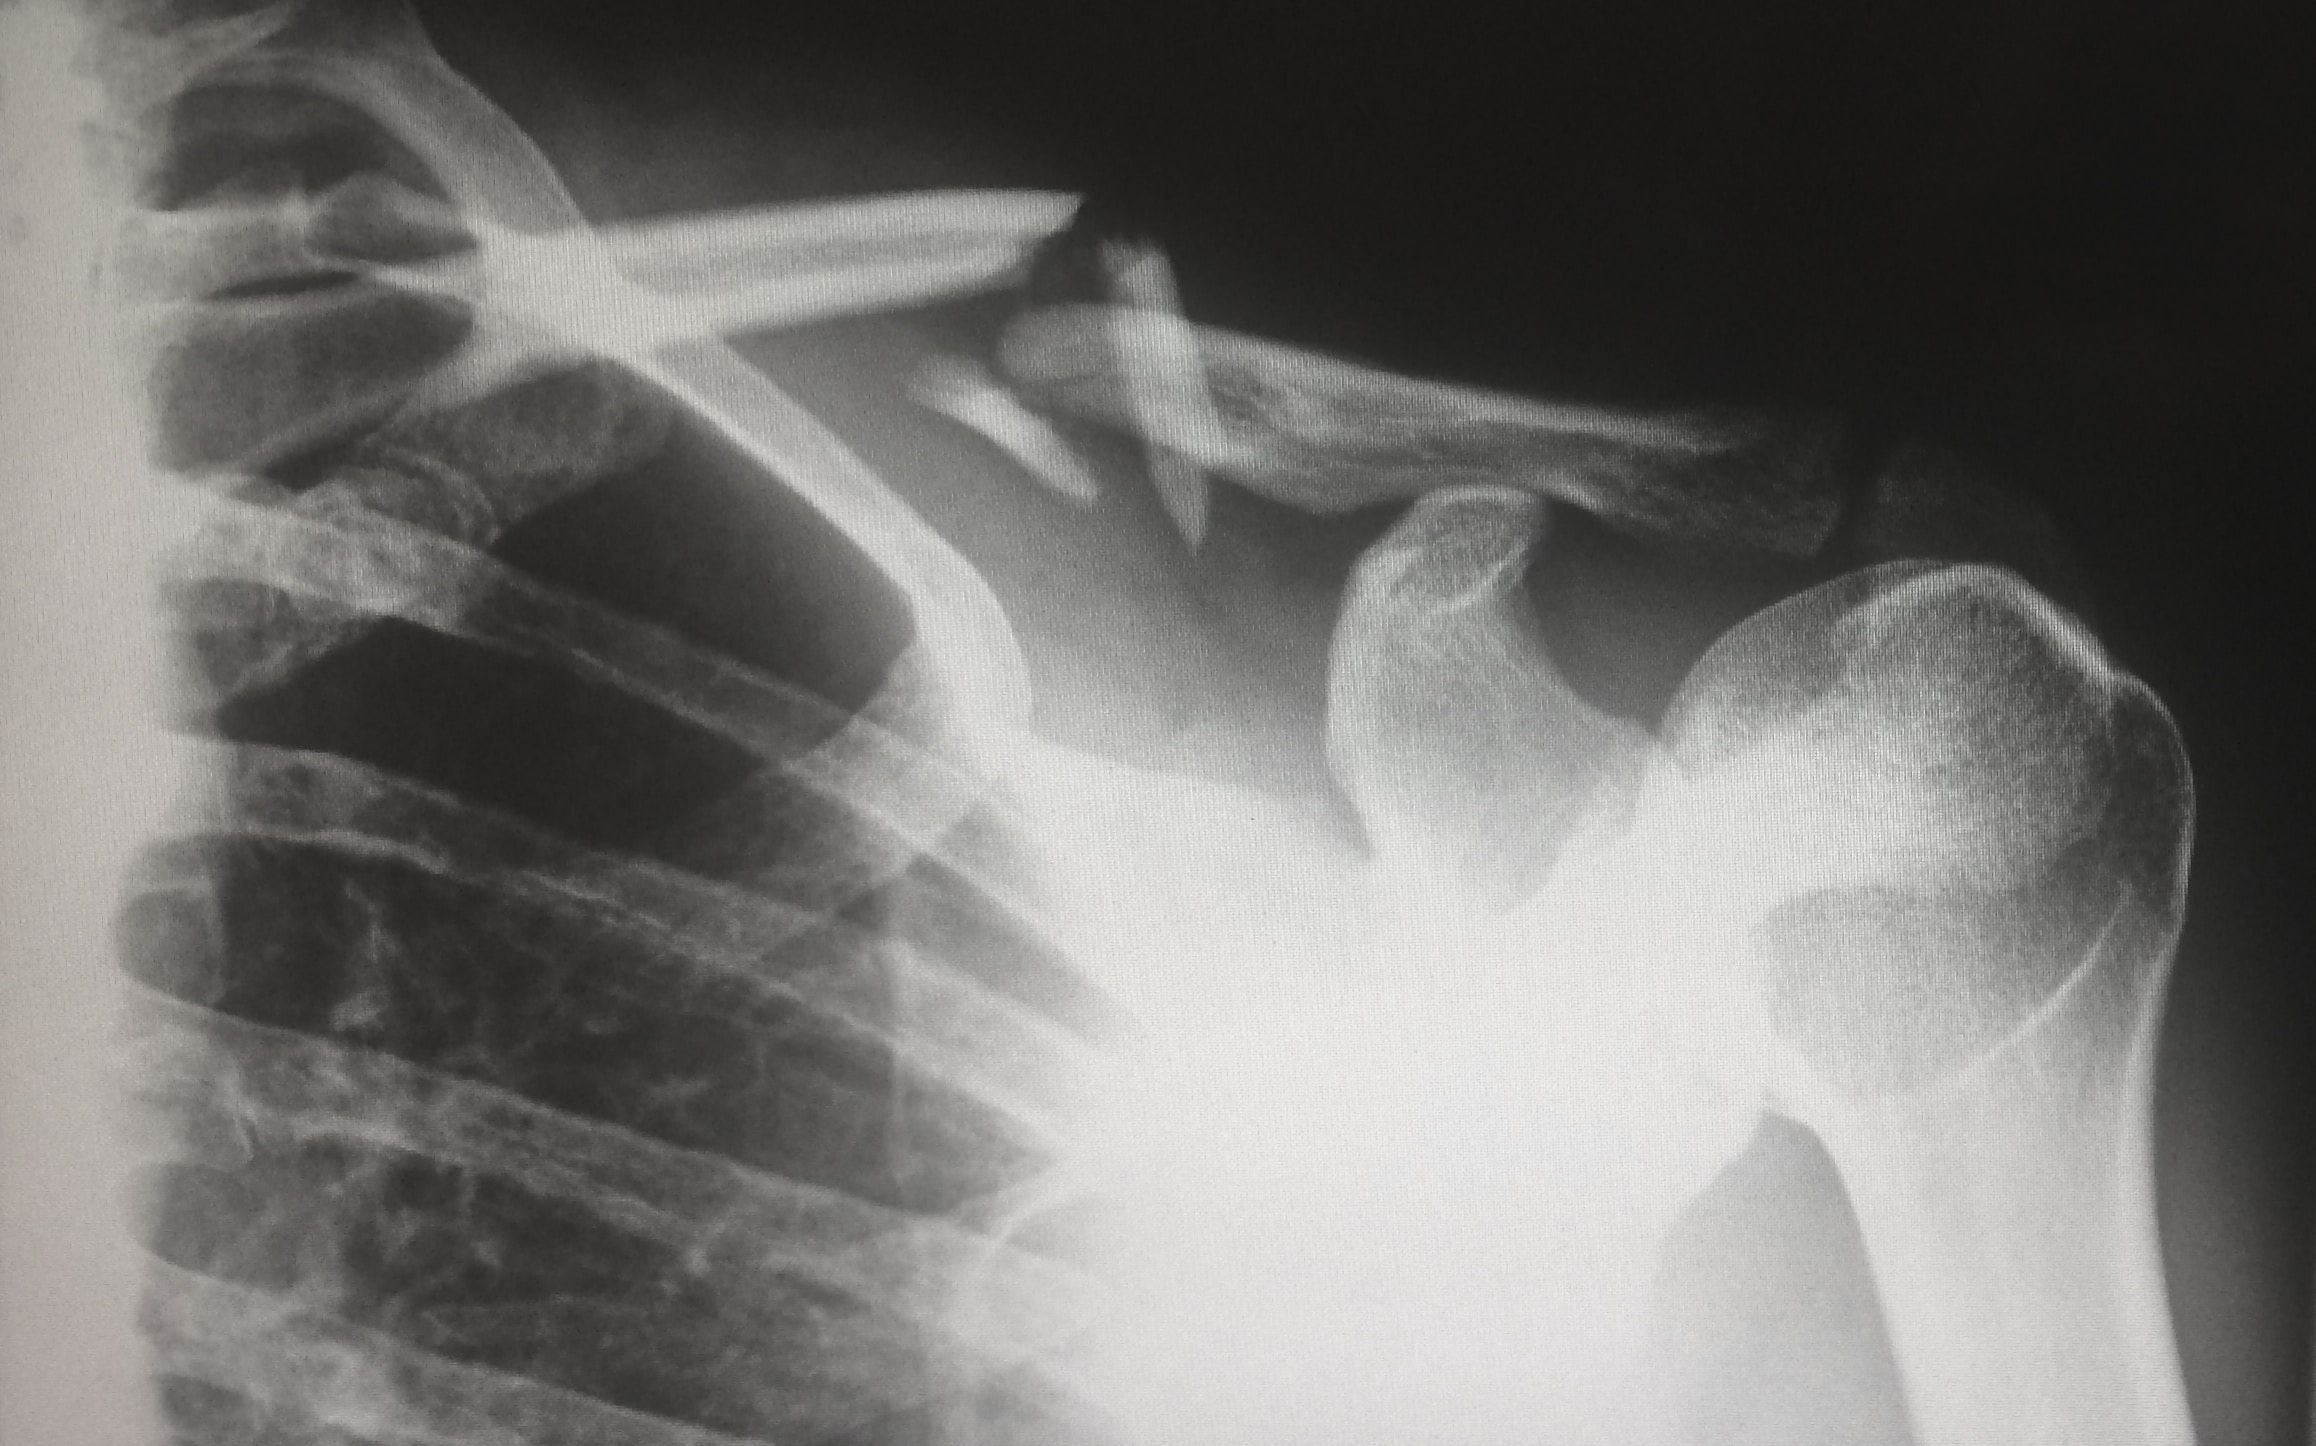 x-ray of broken collar bone